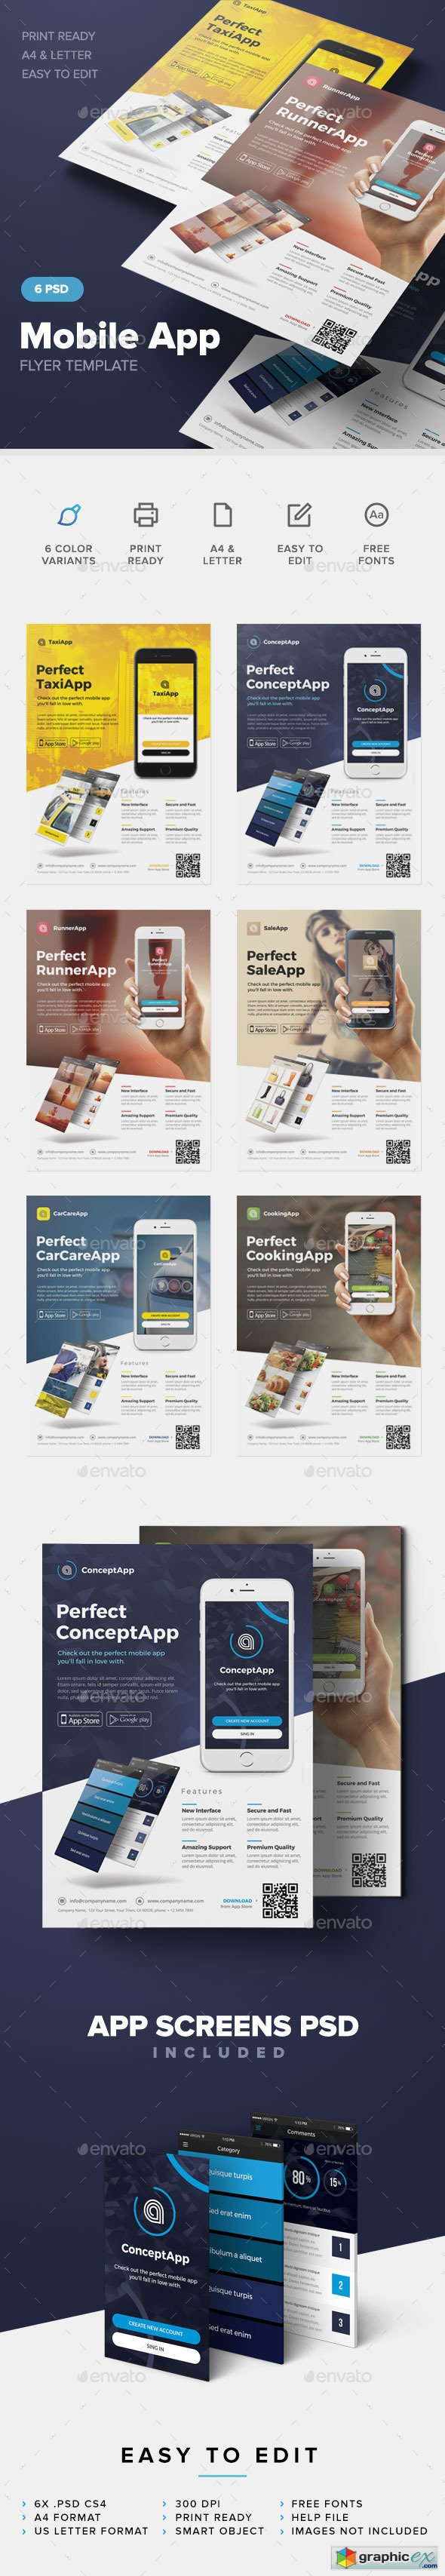 Mobile App Flyer Template 12649951